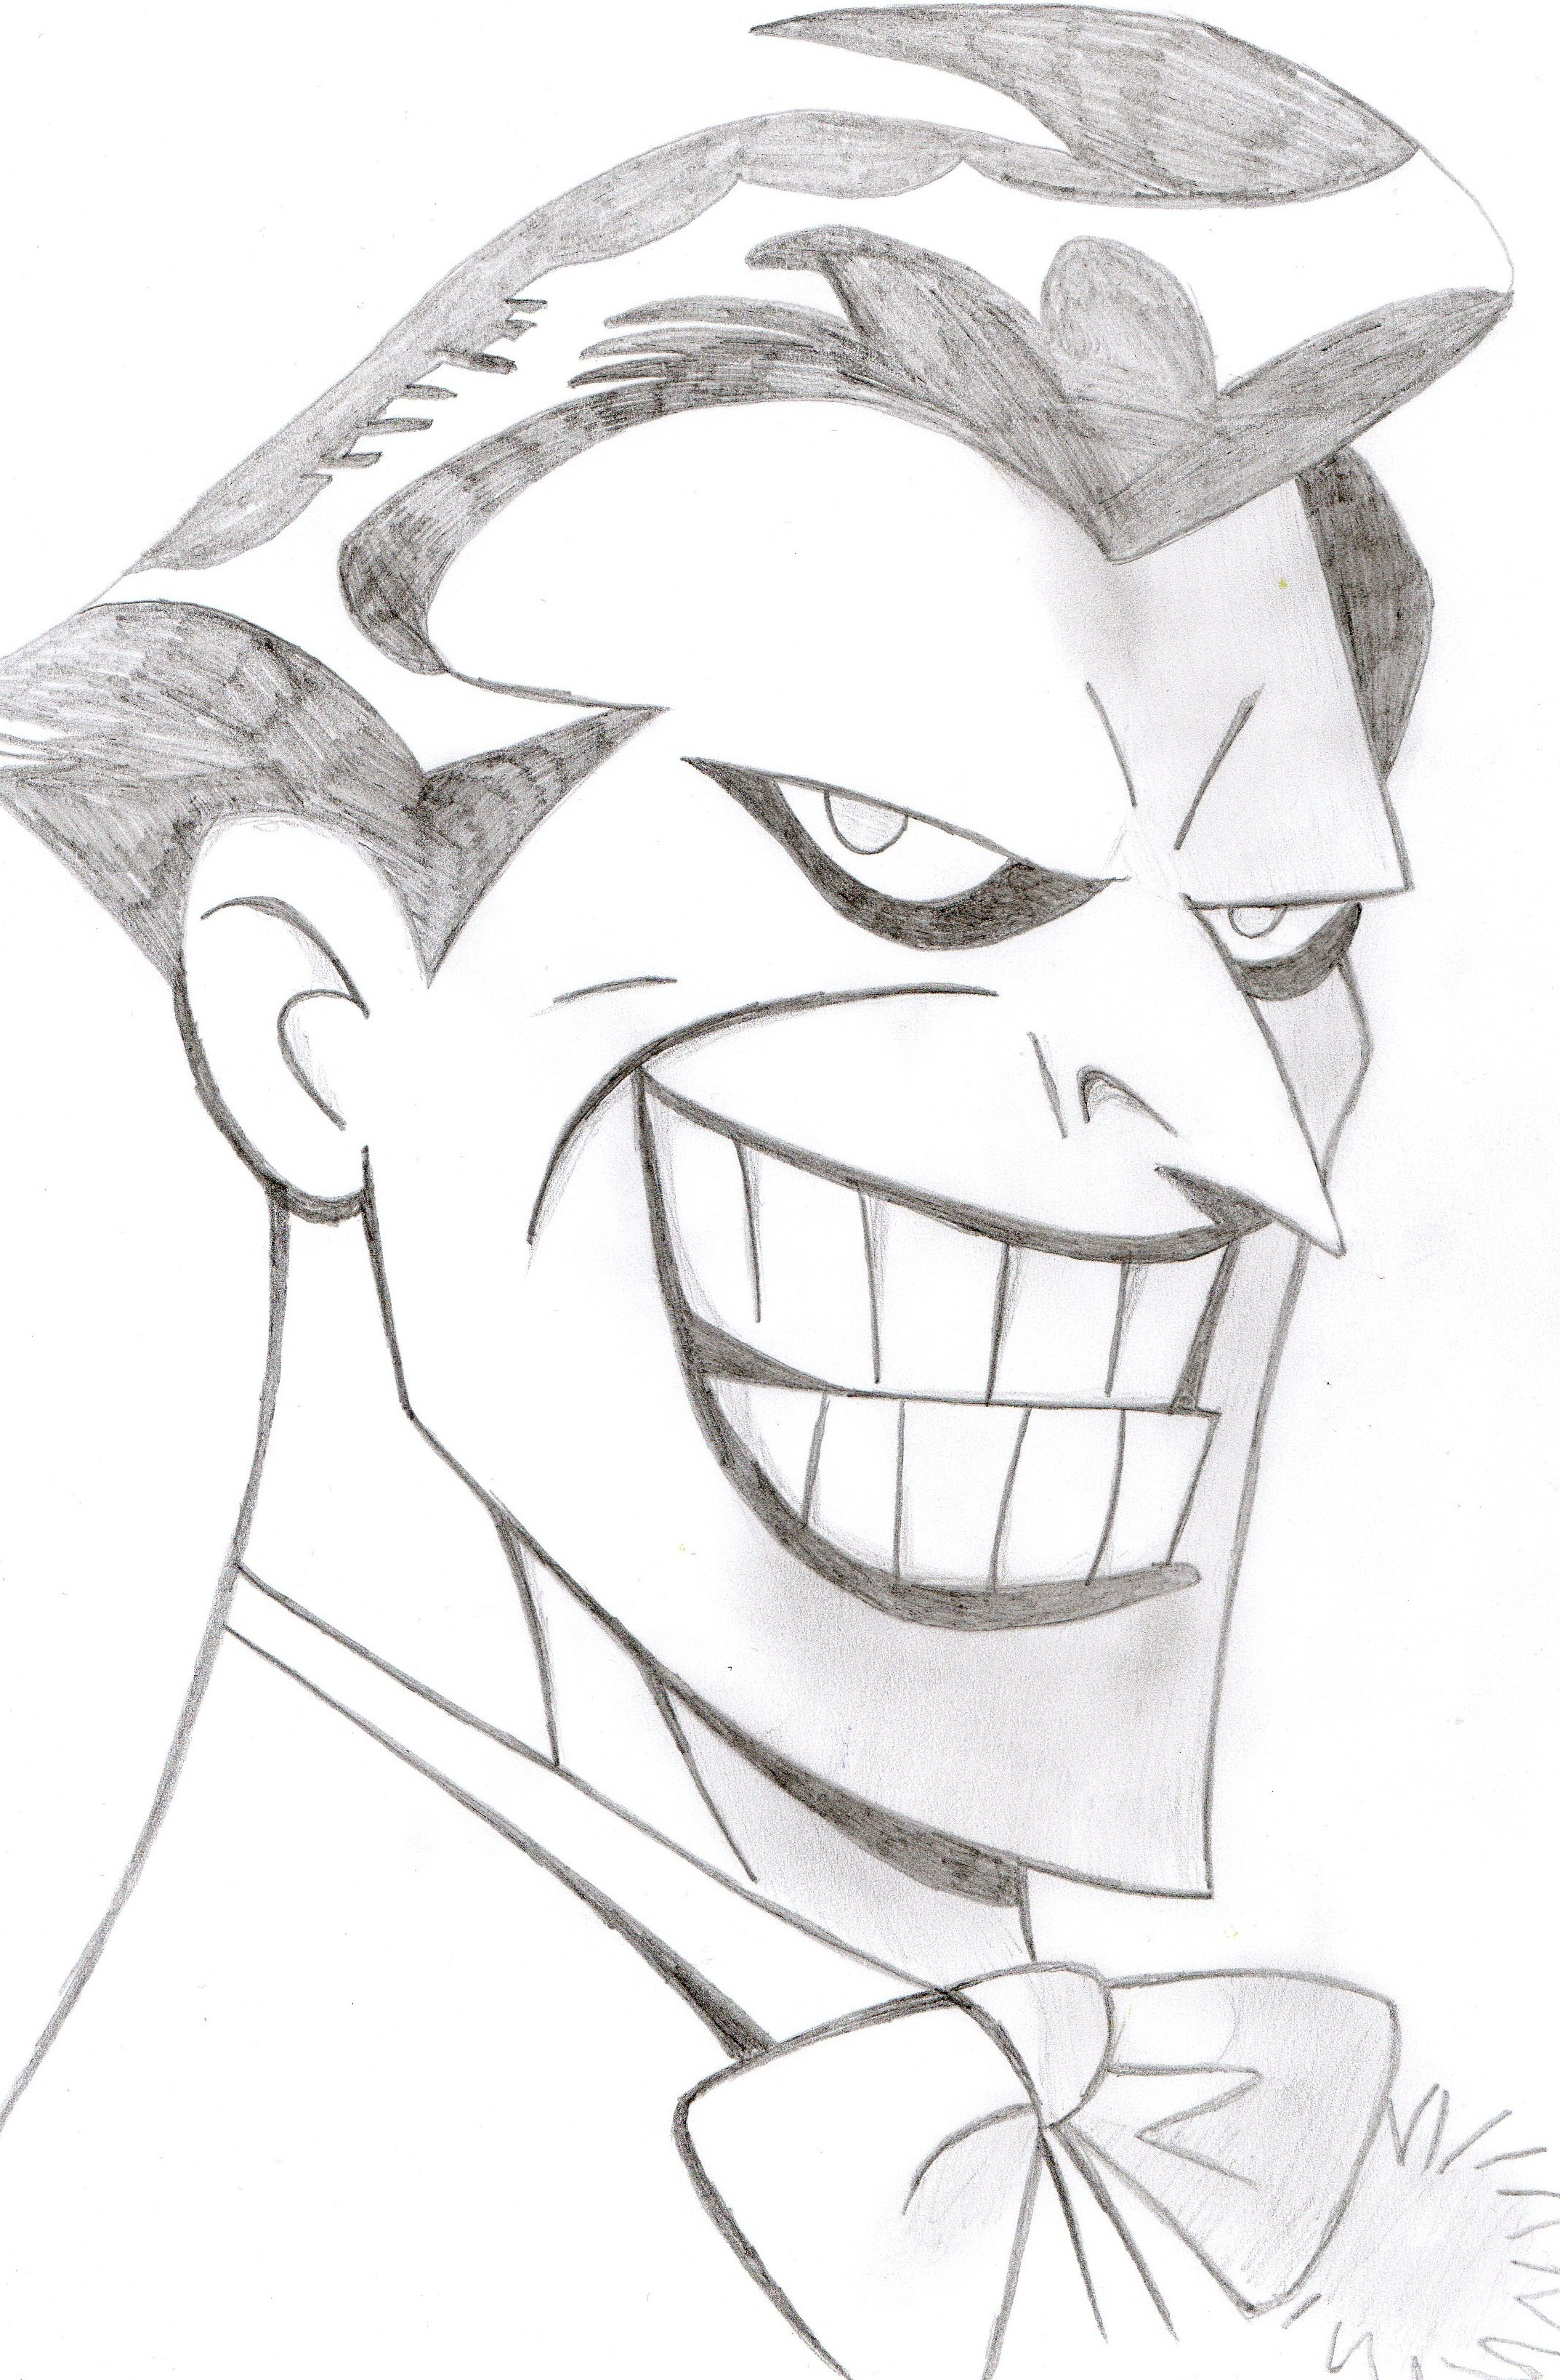 joker portrait by bangcreative on deviantart